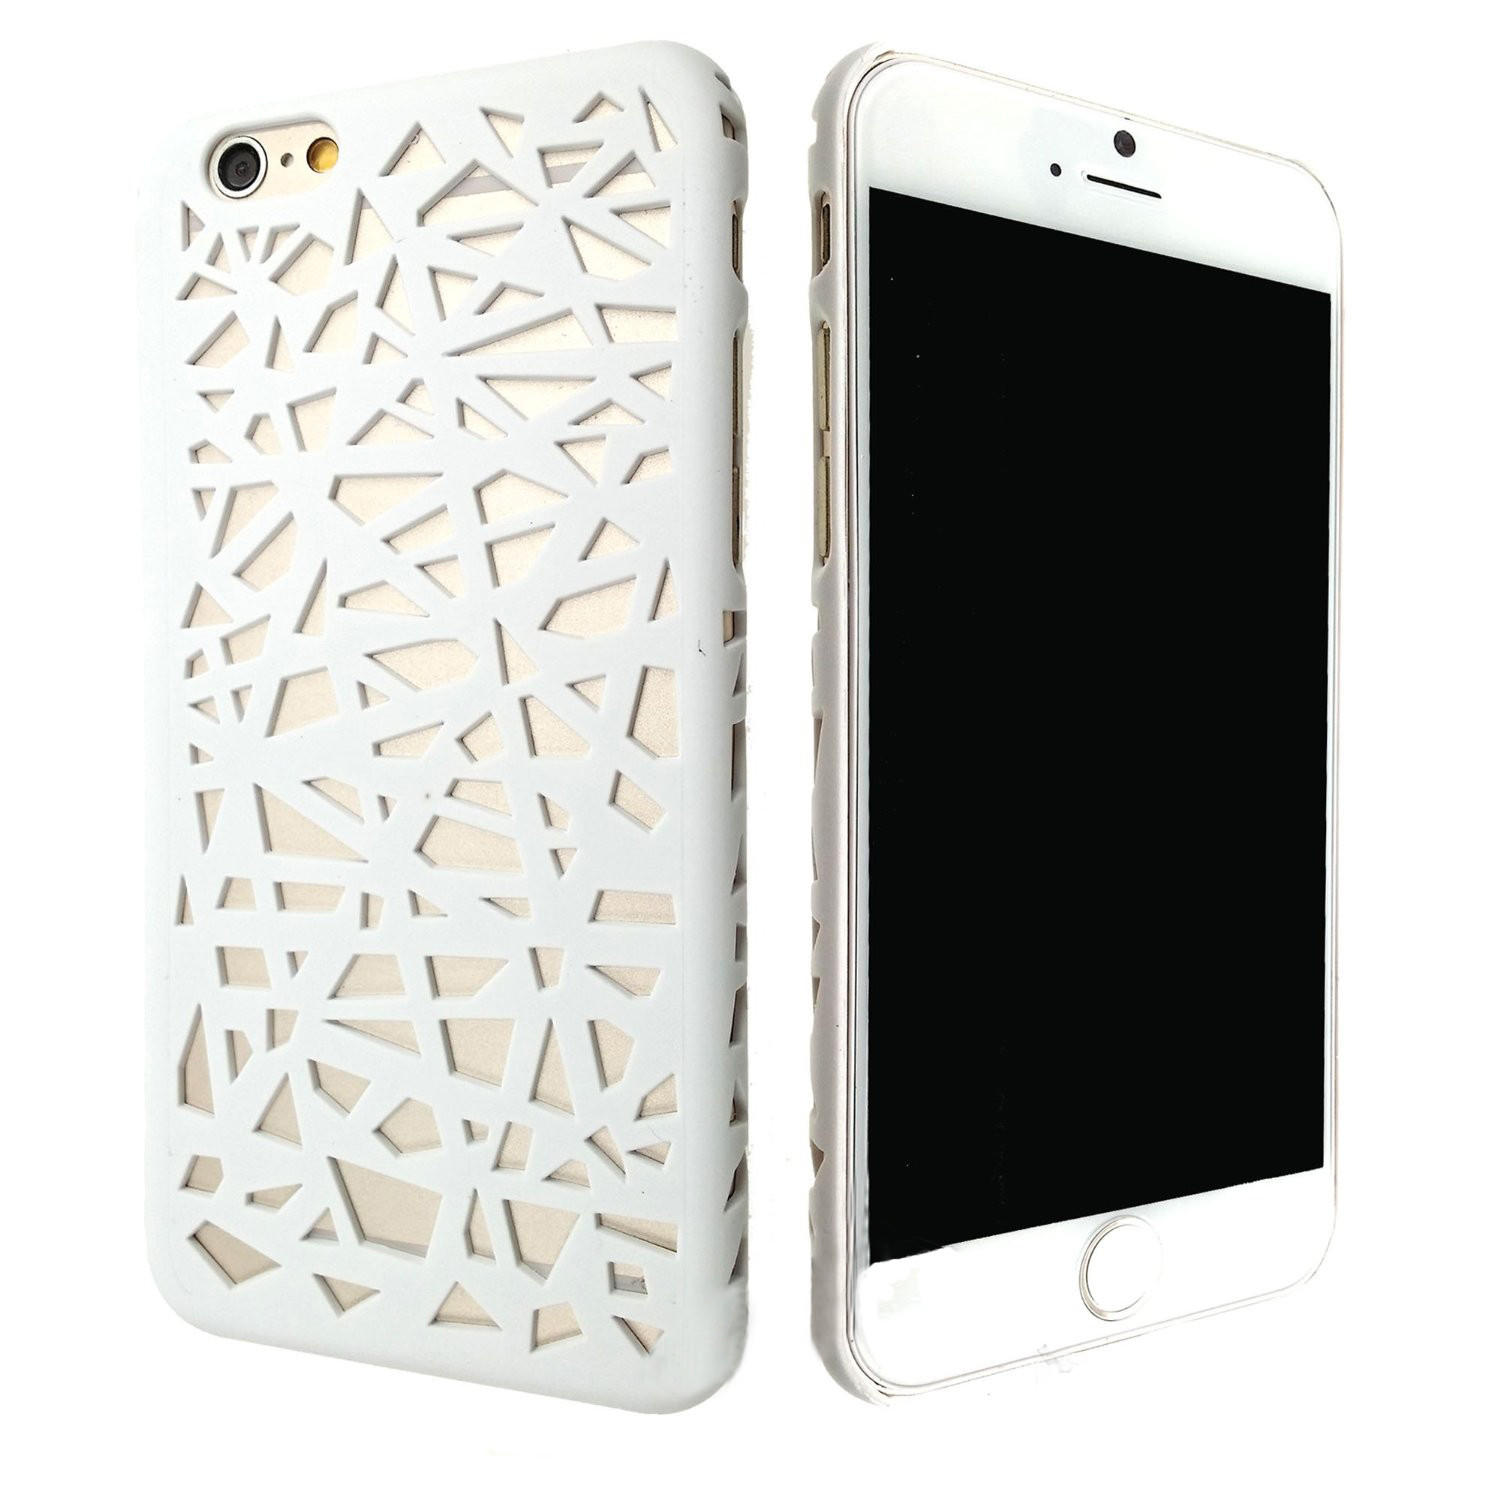 ... Marble iPhone Case special sales  64a47 b754b WHITE ZIG ZAG CASE from  Velvet Caviar super popular ... b4cfd657c